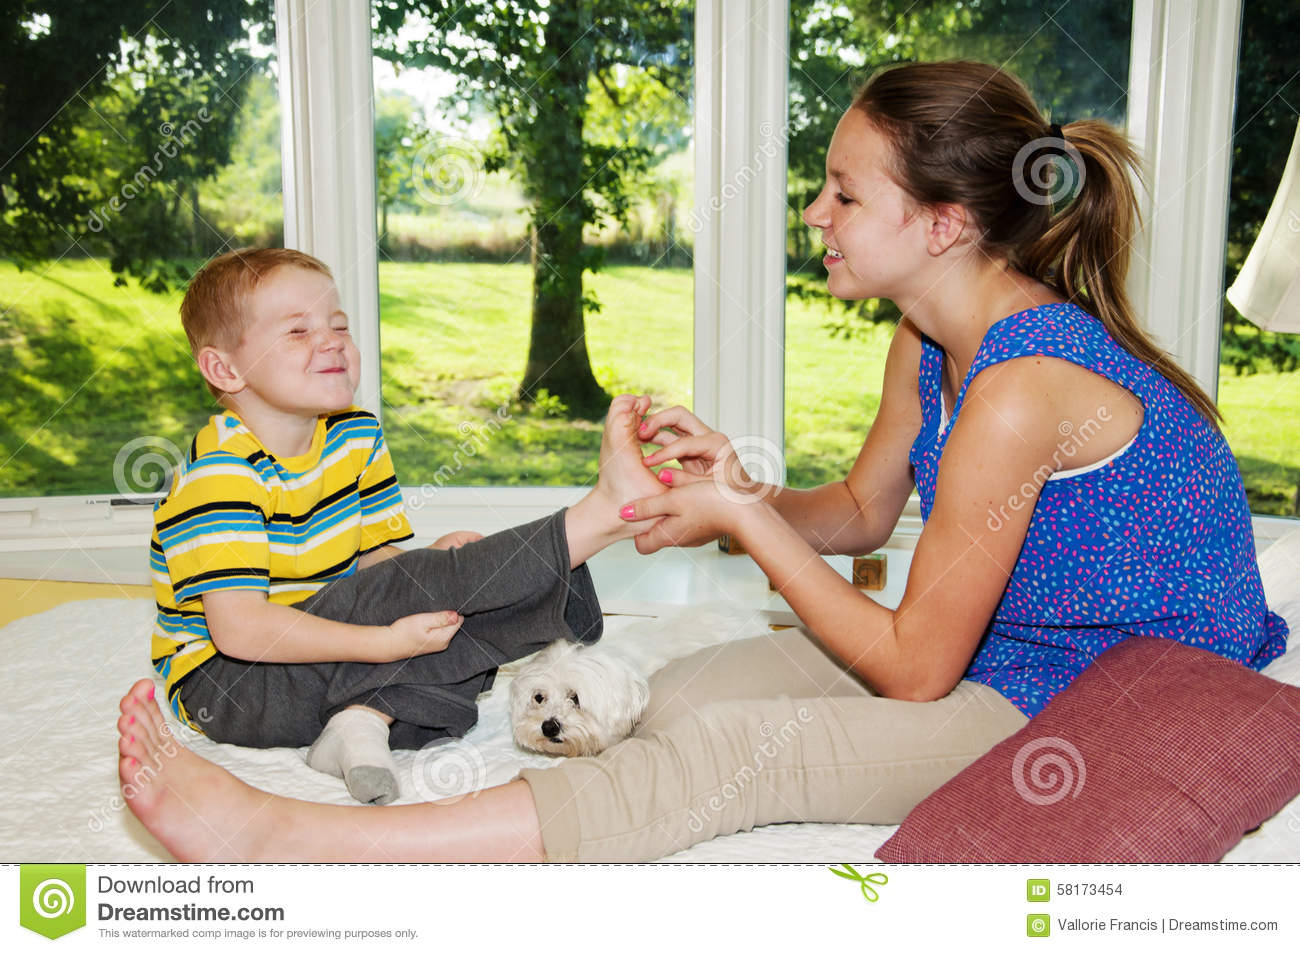 Child ready to laugh while foot tickled by girl